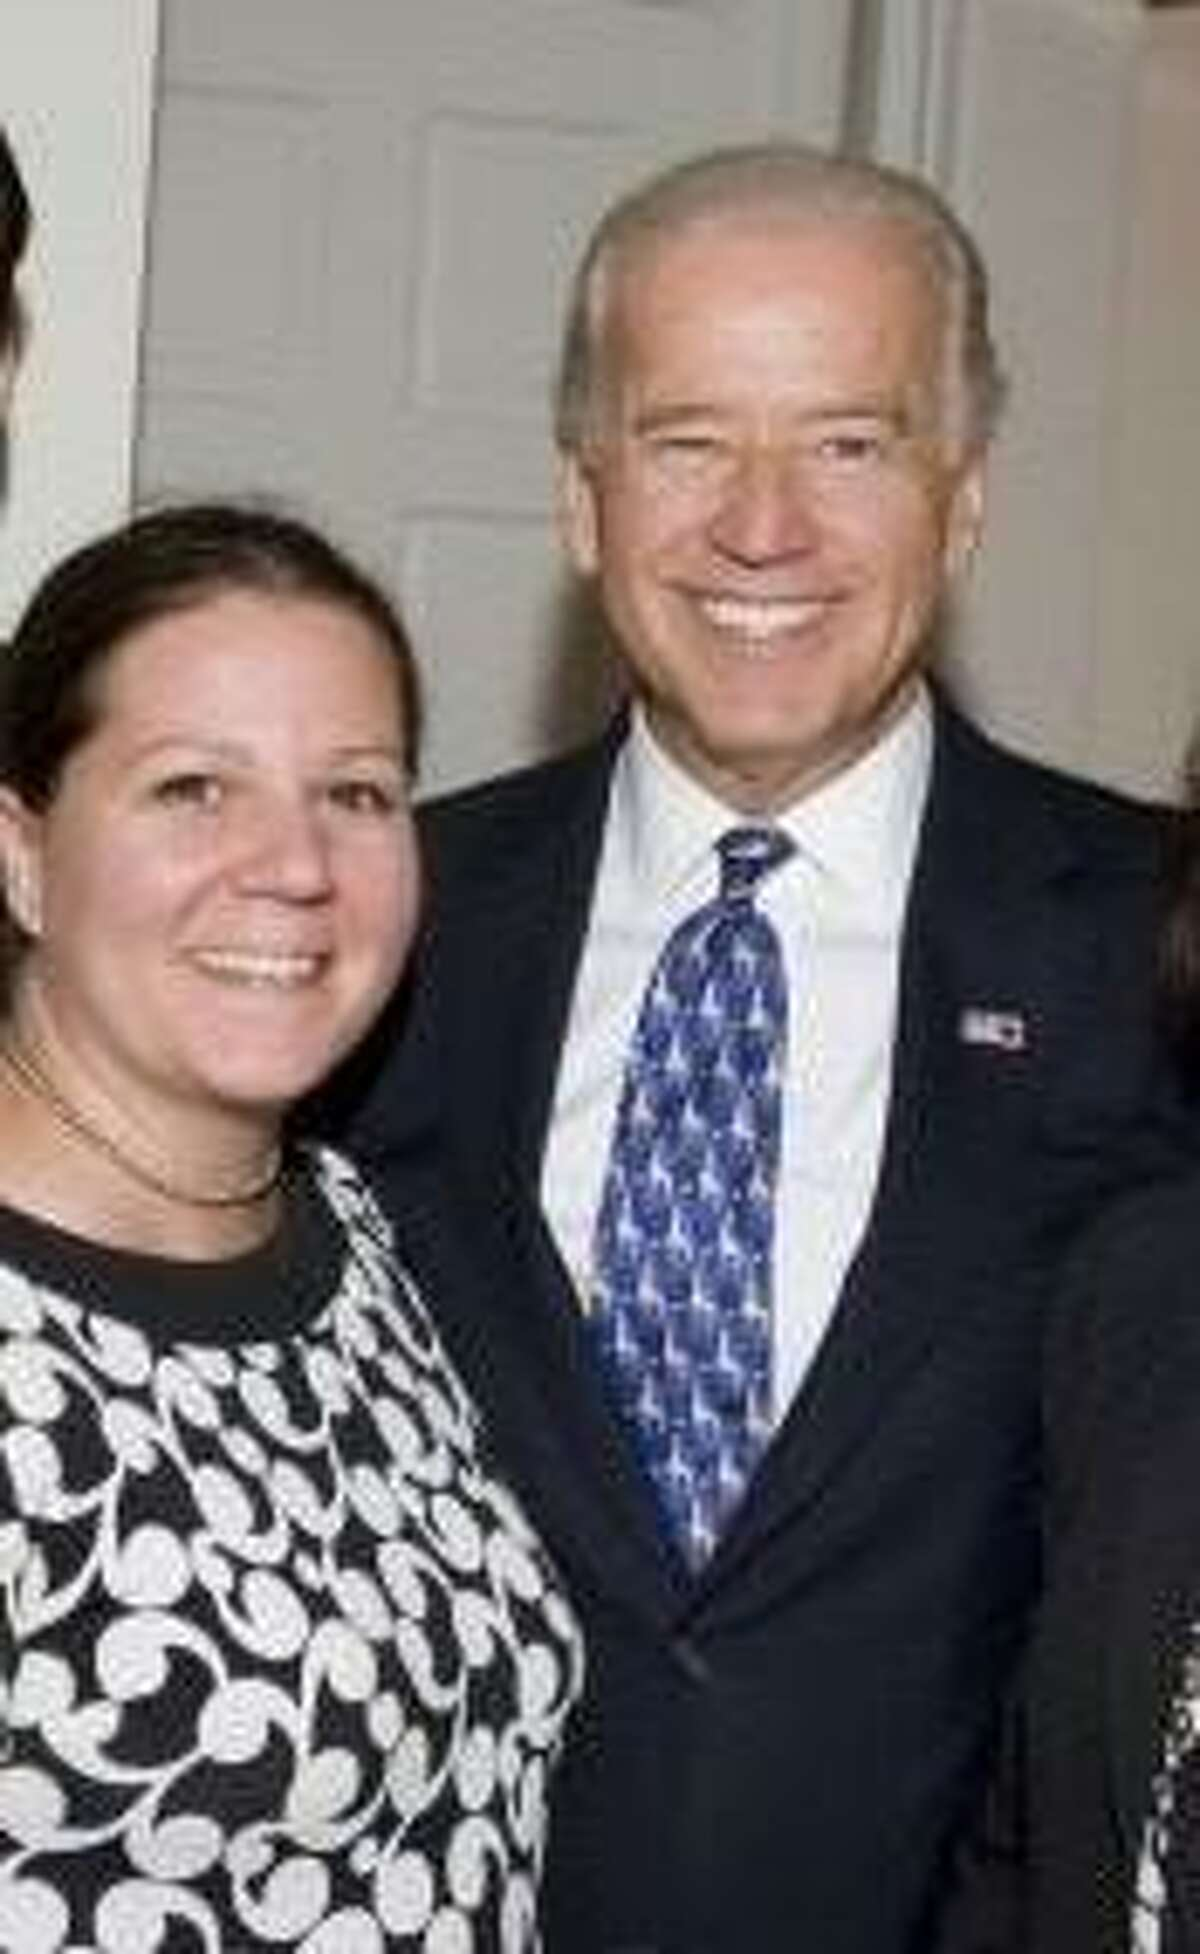 Amy Lappos, left, with then-Vice President Joe Biden at a 2009 fundraising event in Greenwich.